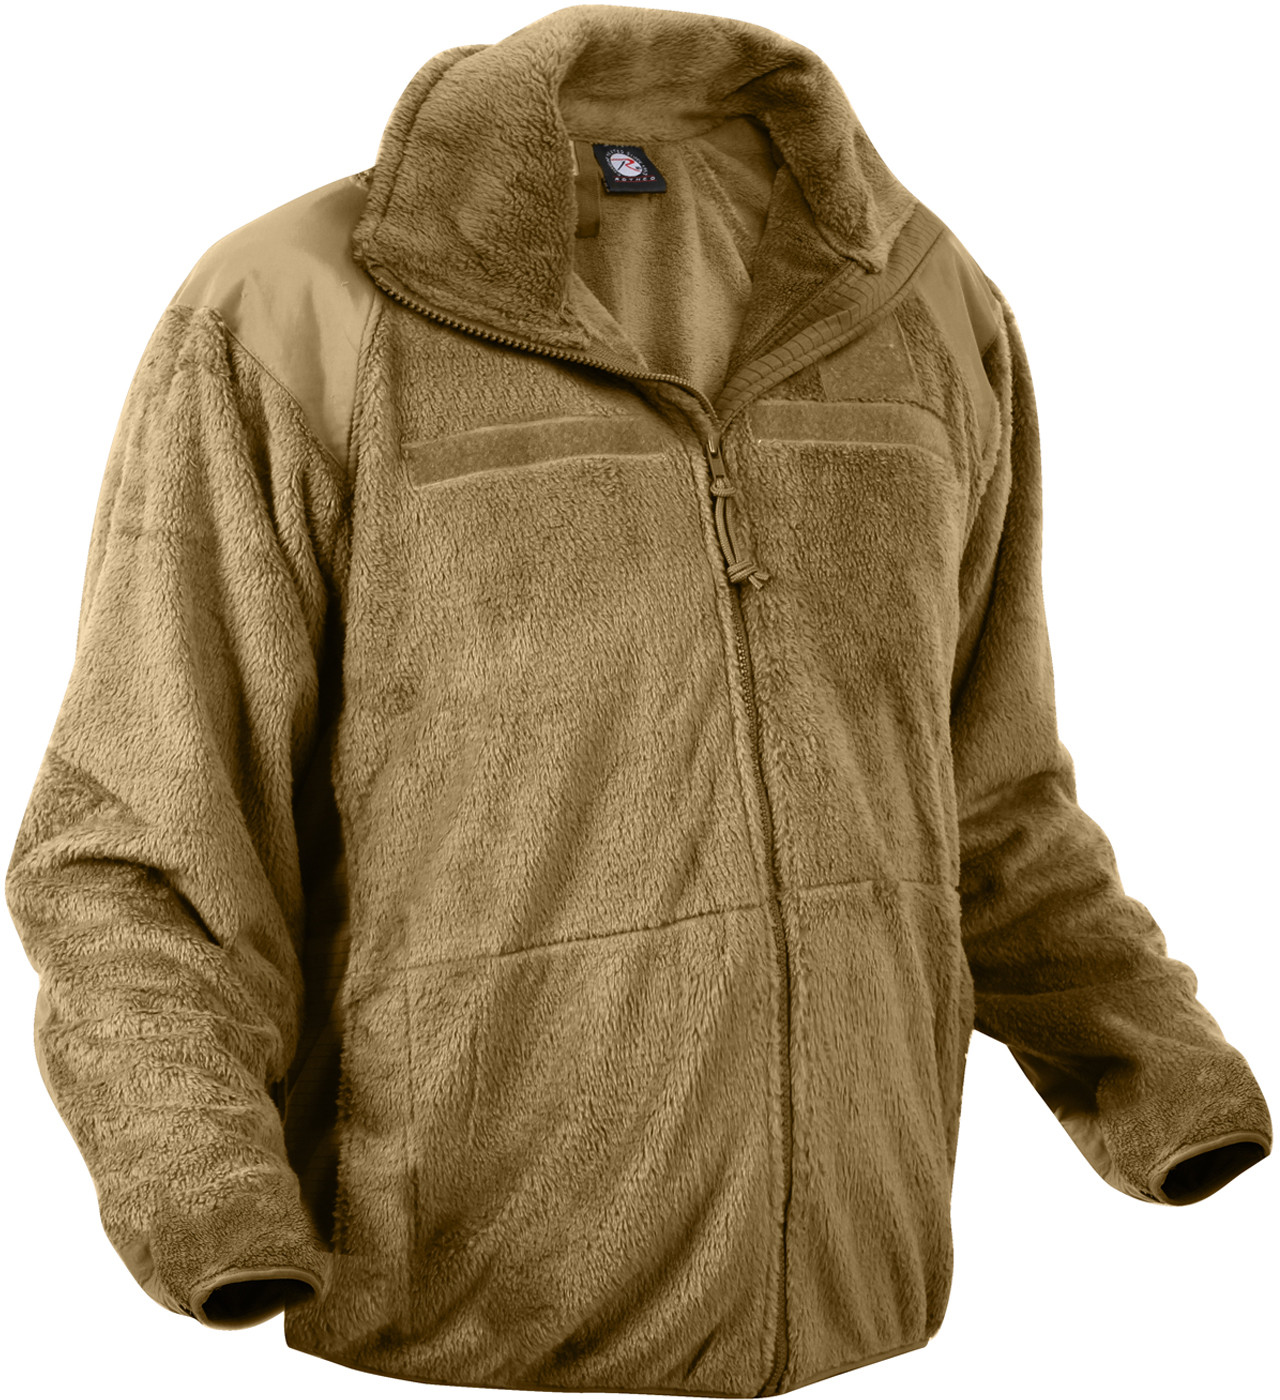 Coyote Brown ECWCS Polar Fleece Gen III Level 3 Jacket 88b0877c565